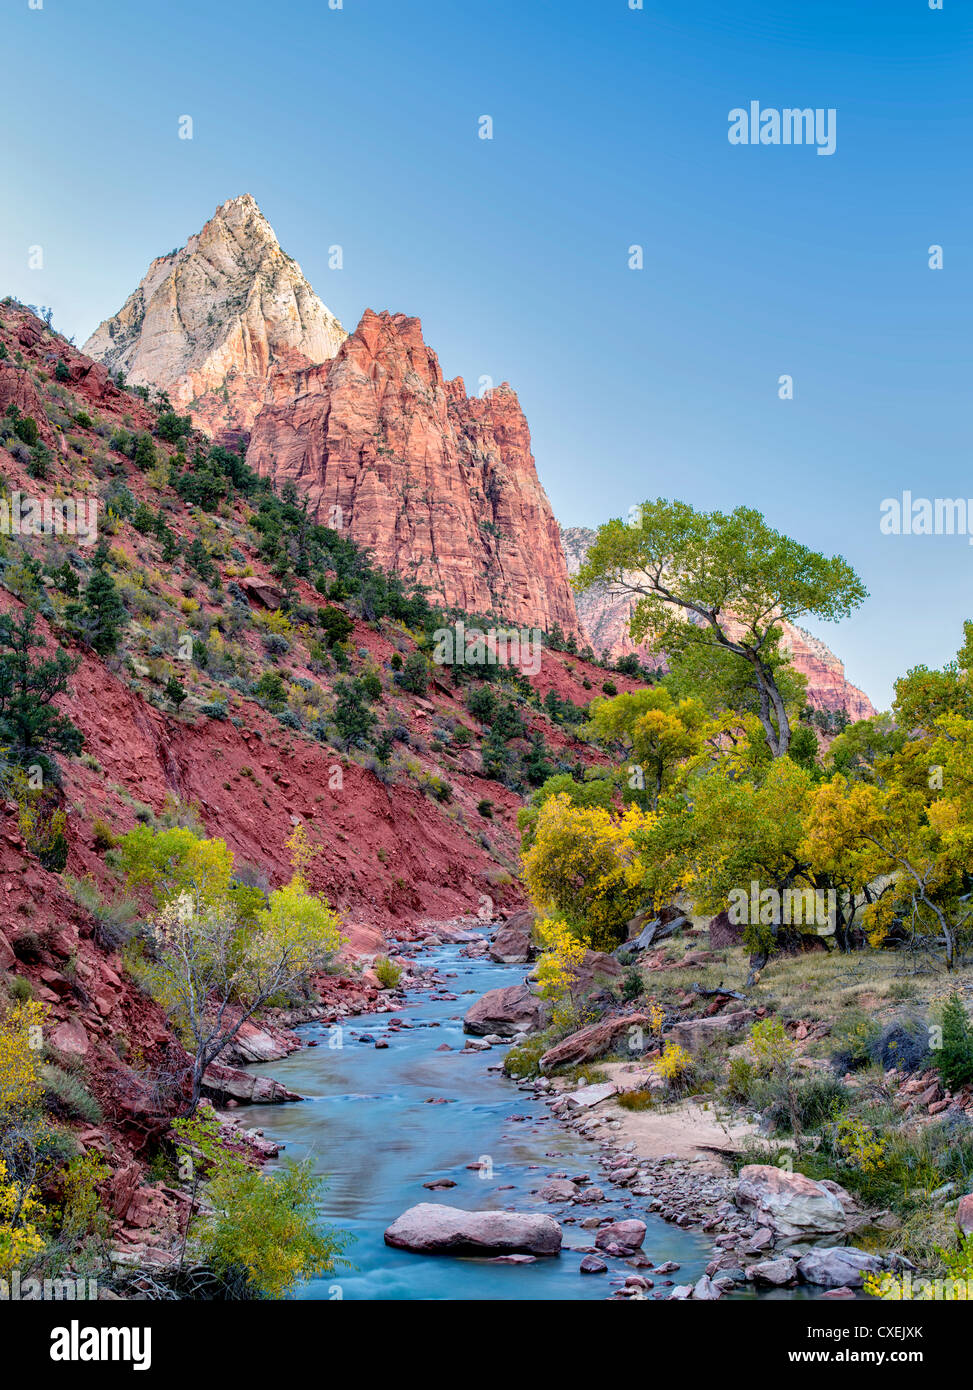 Fall color and Virgin River. Zion National Park, Utah. Sky has been added - Stock Image